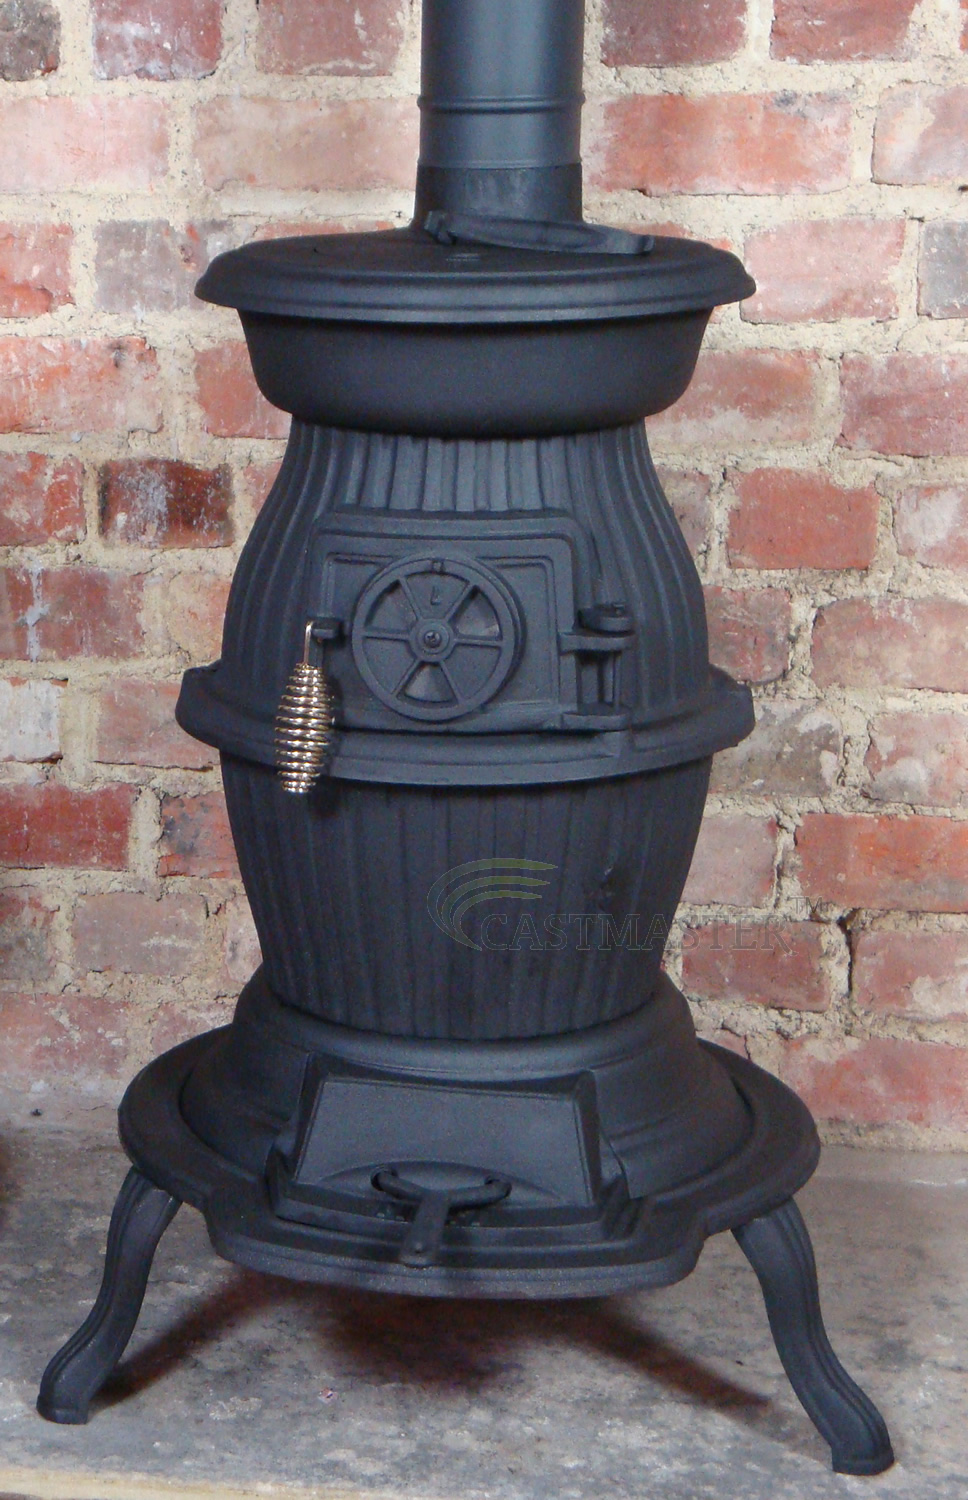 Pot Belly Wood Burning Stove WB Designs - Pot Belly Wood Burning Stove WB Designs